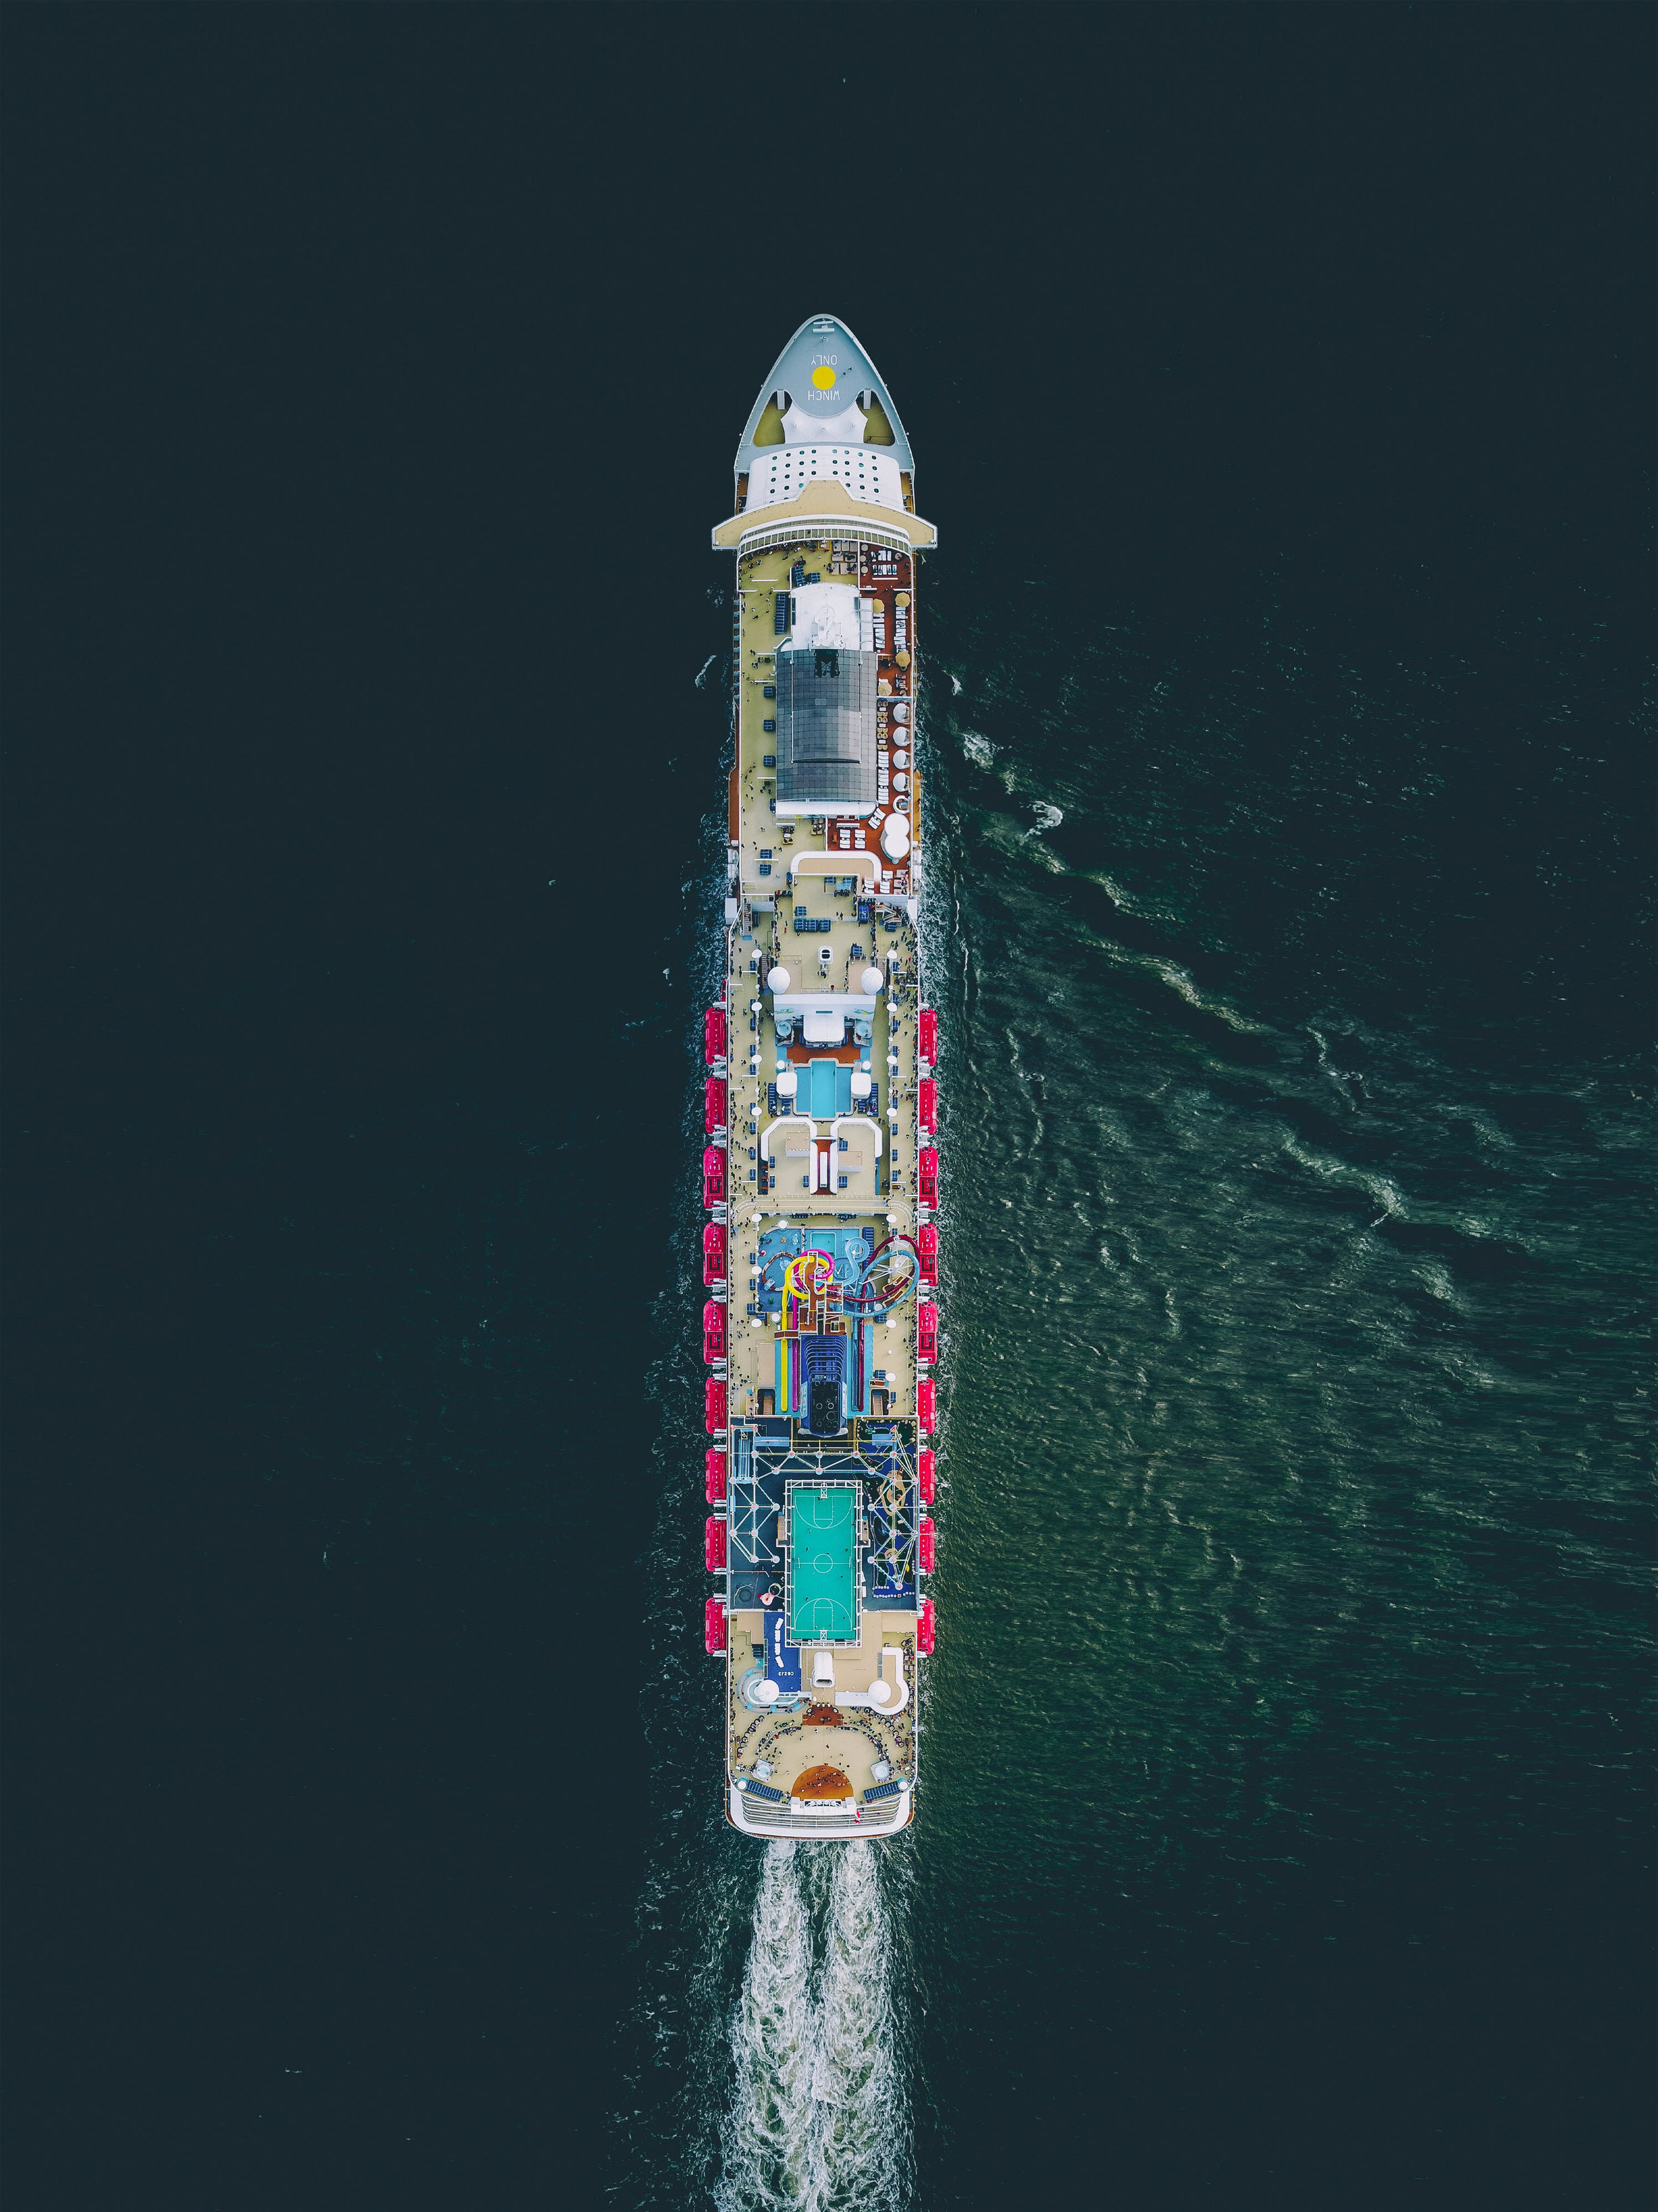 """The Norwegian Breakaway cruises through the Atlantic Ocean, en route to Bermuda from New York City. This massive ship is 1,068 feet long (325 m) and has capacity for 3,963 passengers. It has 1,024 cabins, 238 suites, several bars and restaurants, a waterpark, casino, spa, and other attractions for travelers.  36°39'15.8""""N, 69°29'53.9""""W  Source imagery: Martin Sanchez (@zekedrone)"""